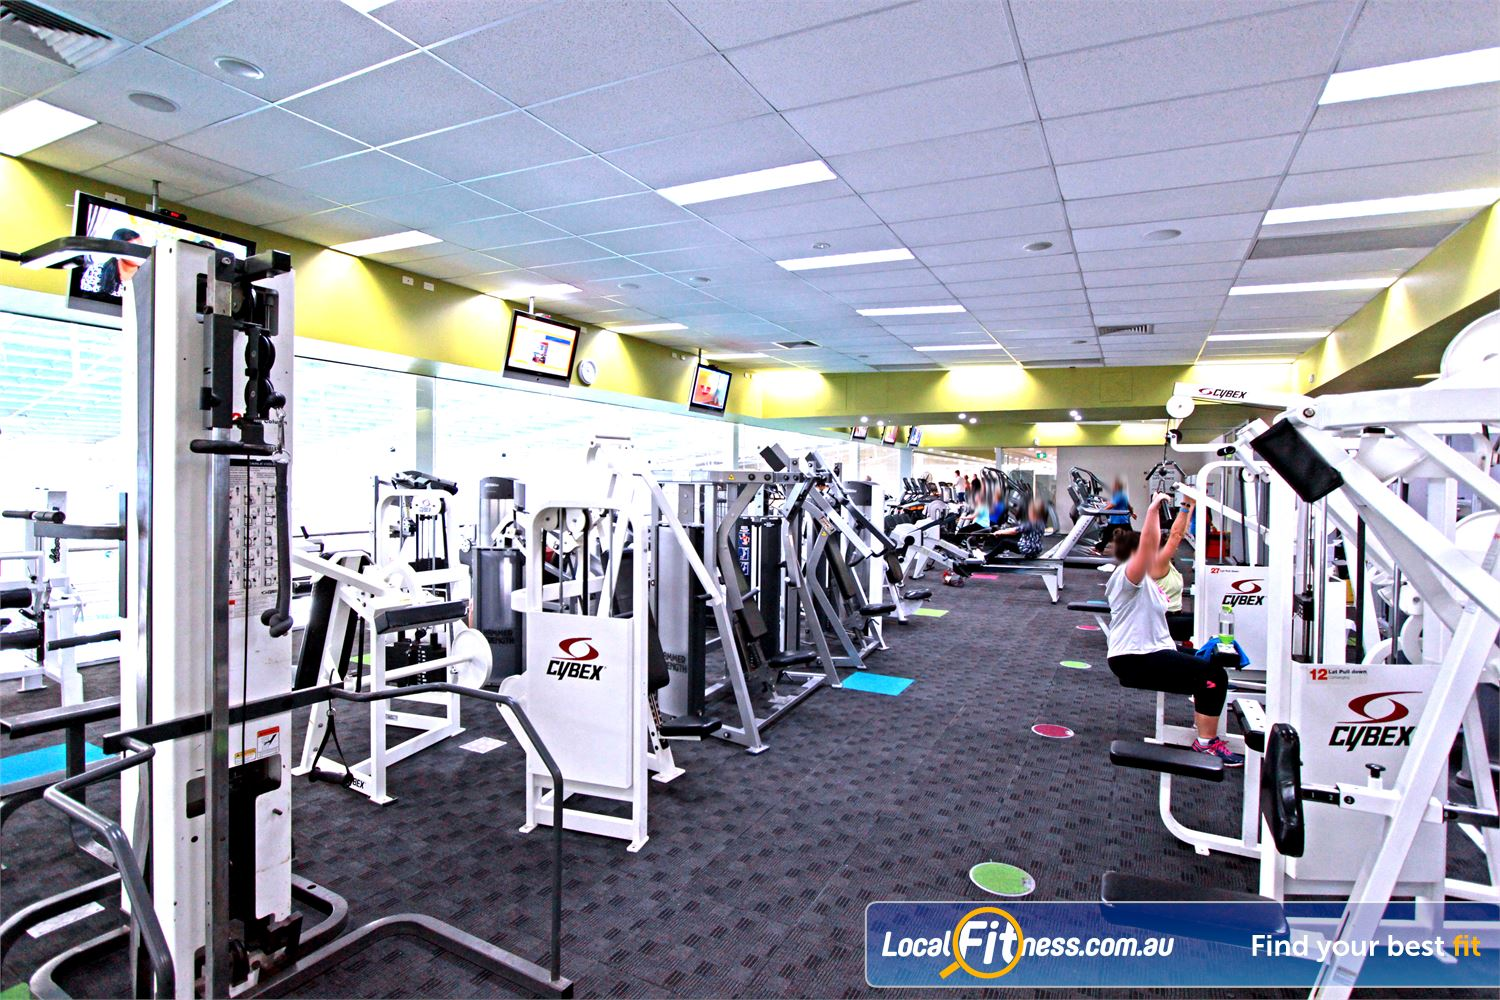 Casey Arc Near Hampton Park Our Narre Warren gym includes easy to use pin-loading equipment.